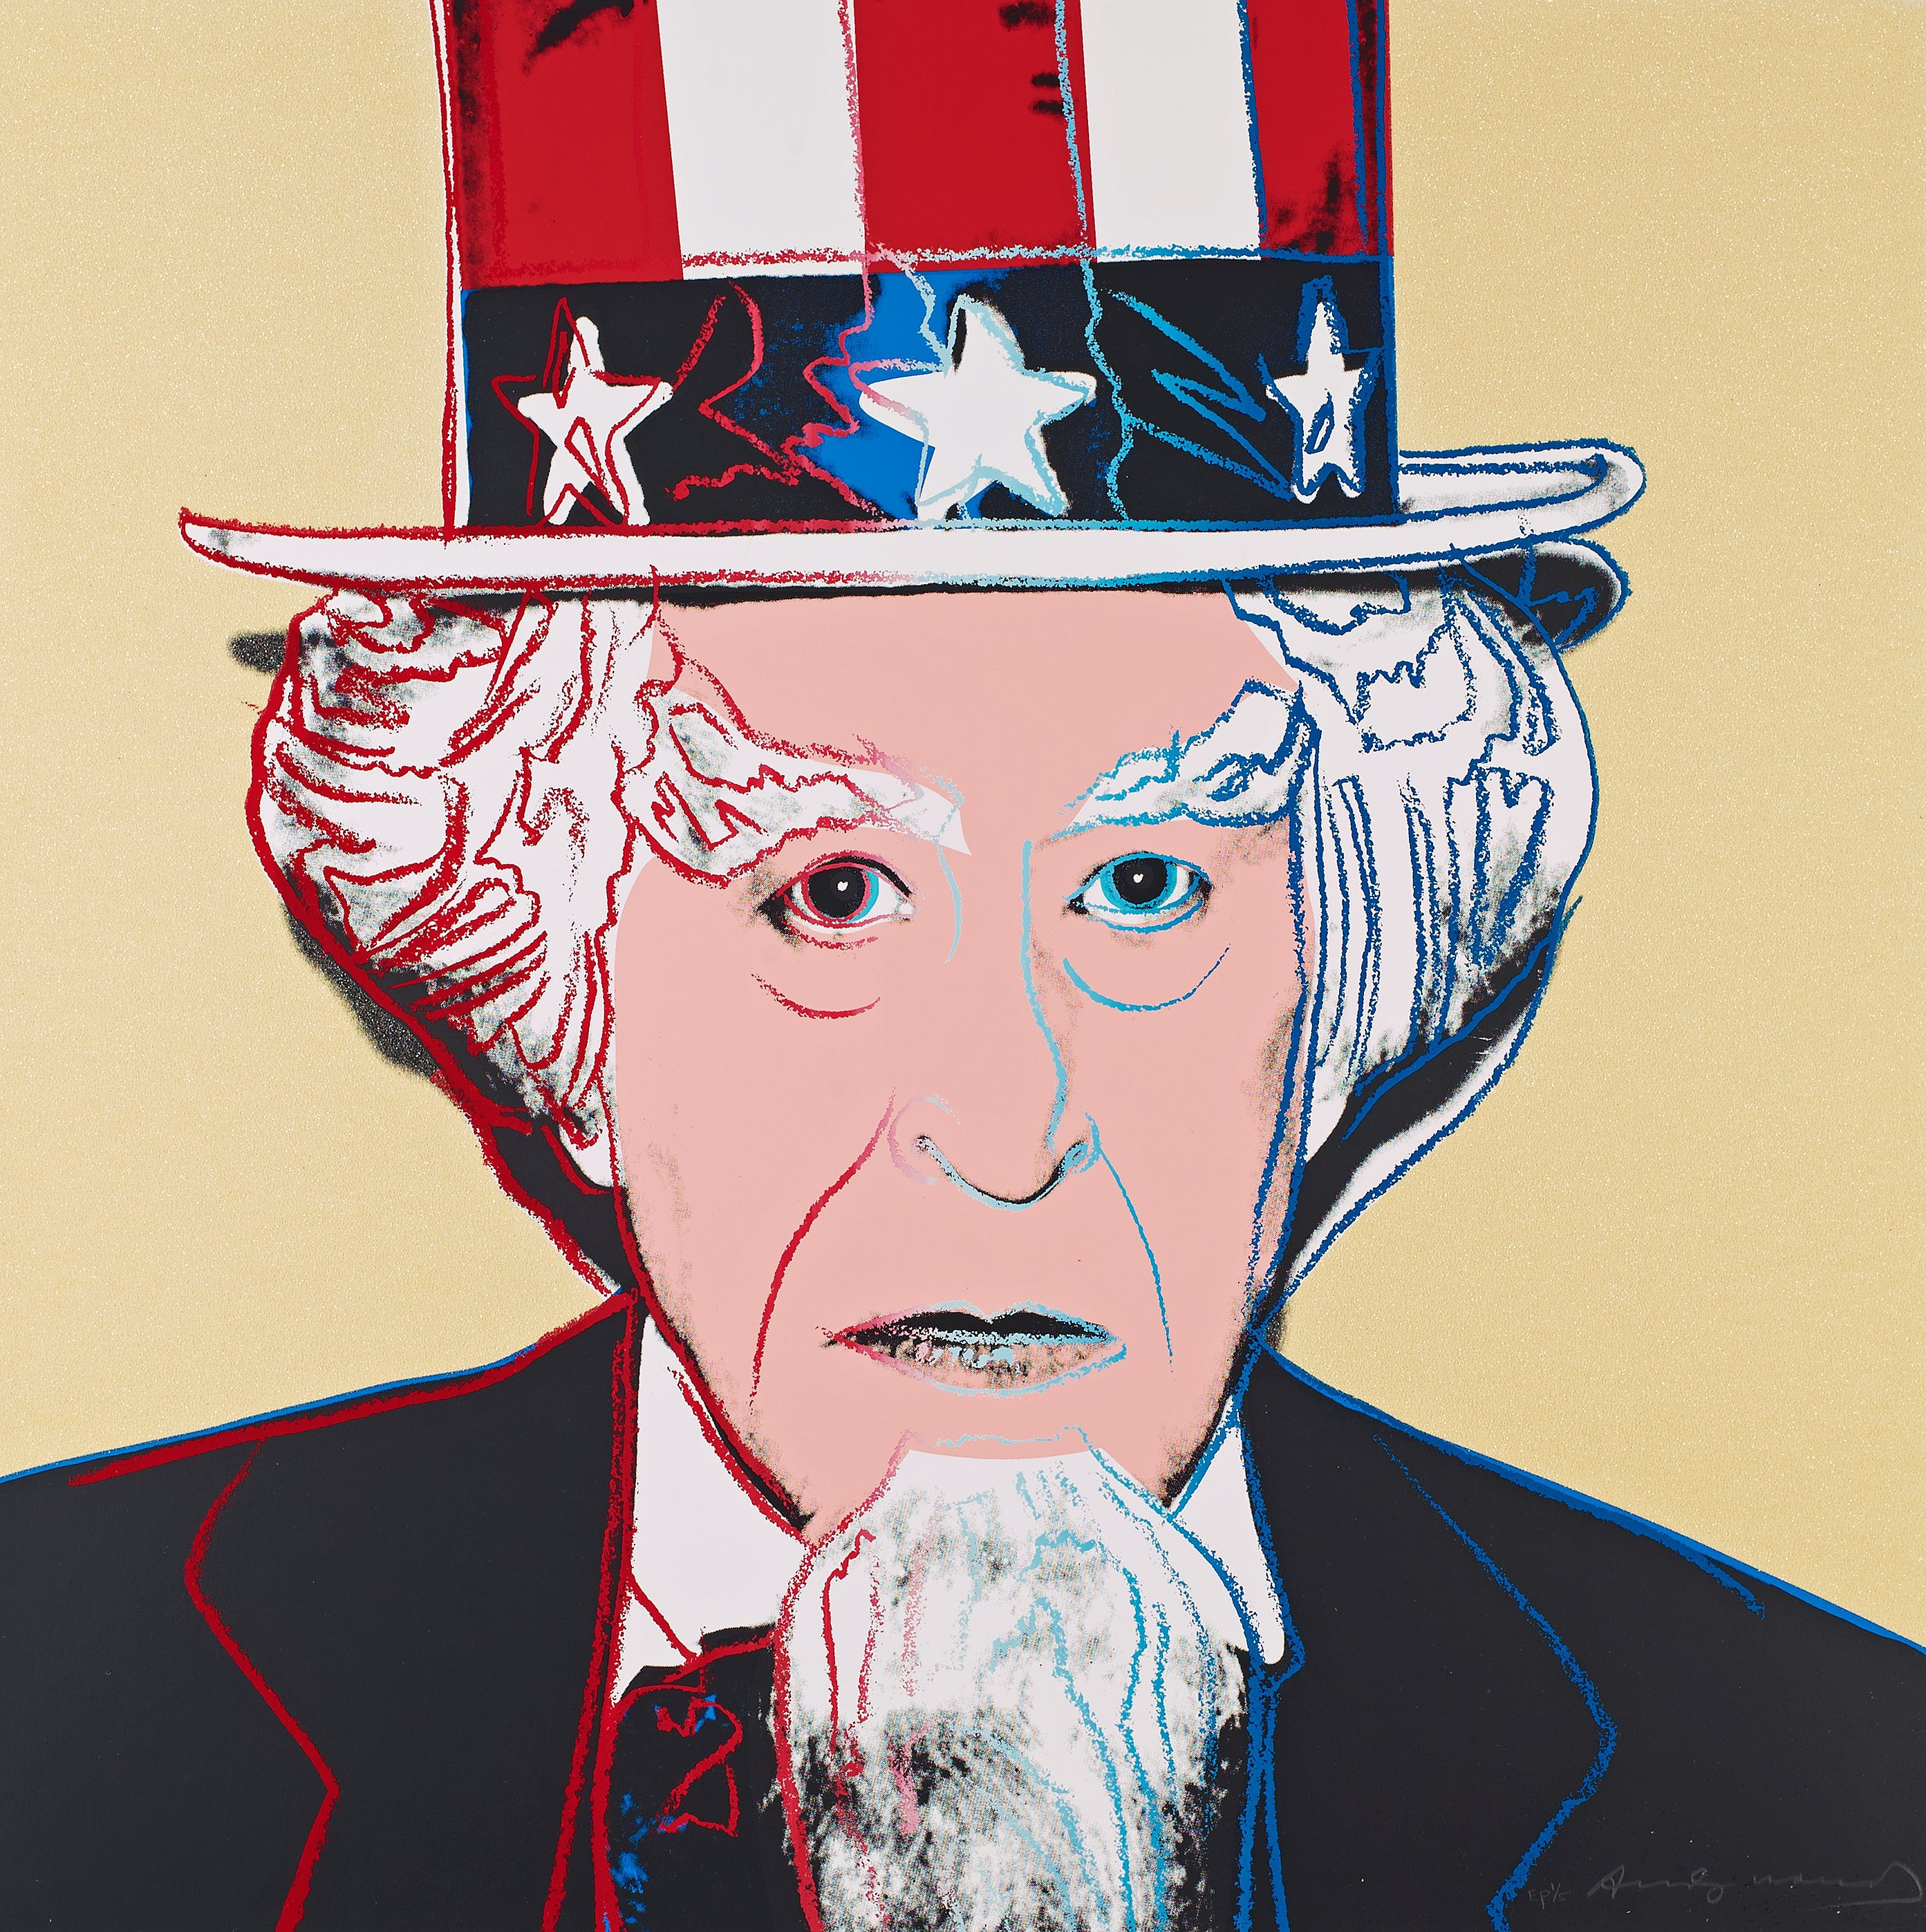 andy warhol uncle sam from myths bukowskis